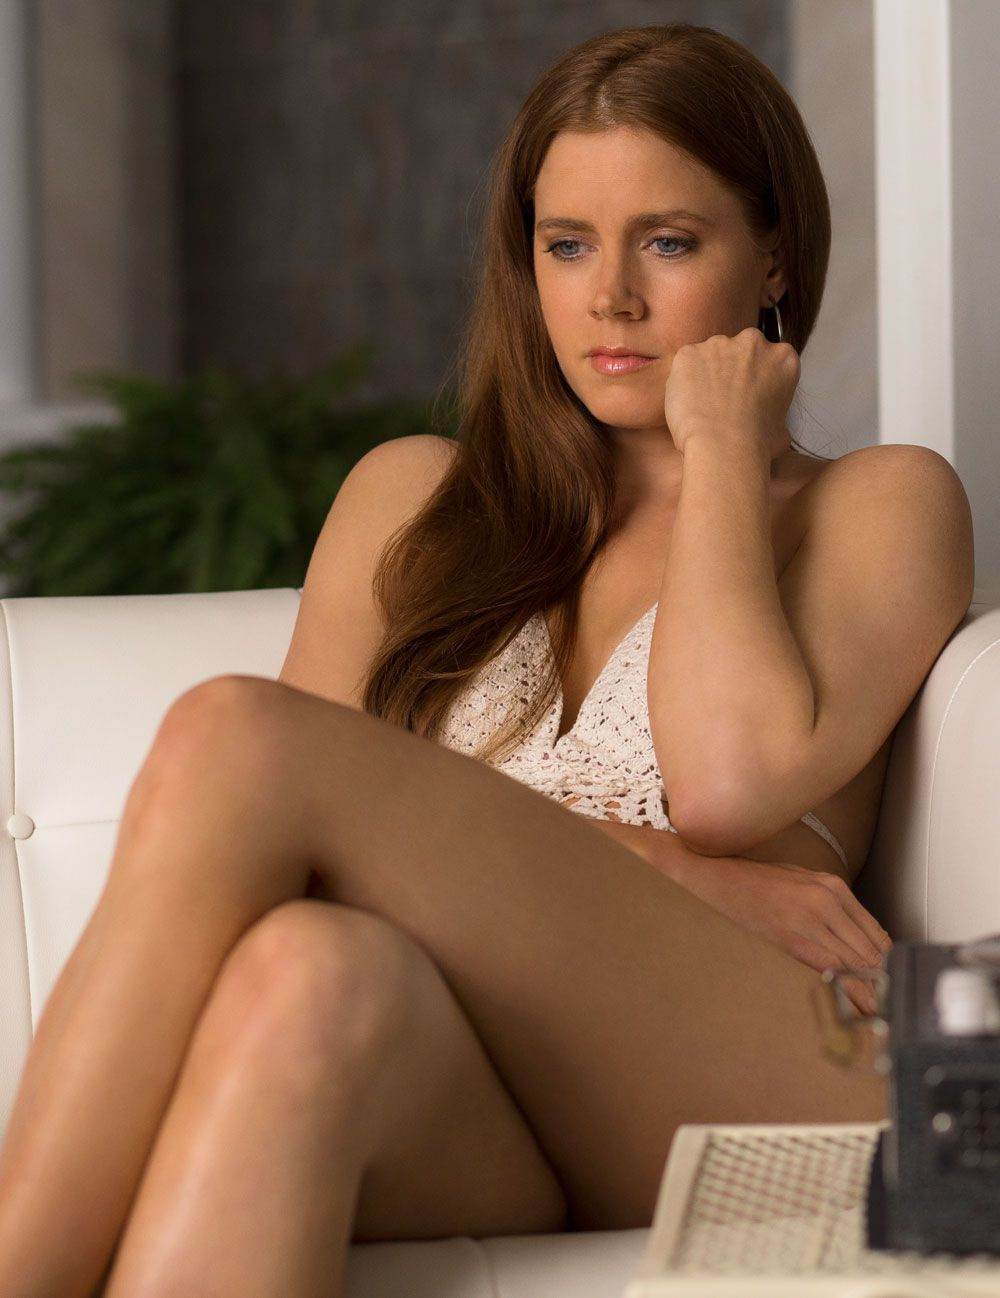 Amy Adams Desnuda amy adams: too damned hot | amy adams bikini, amy adams